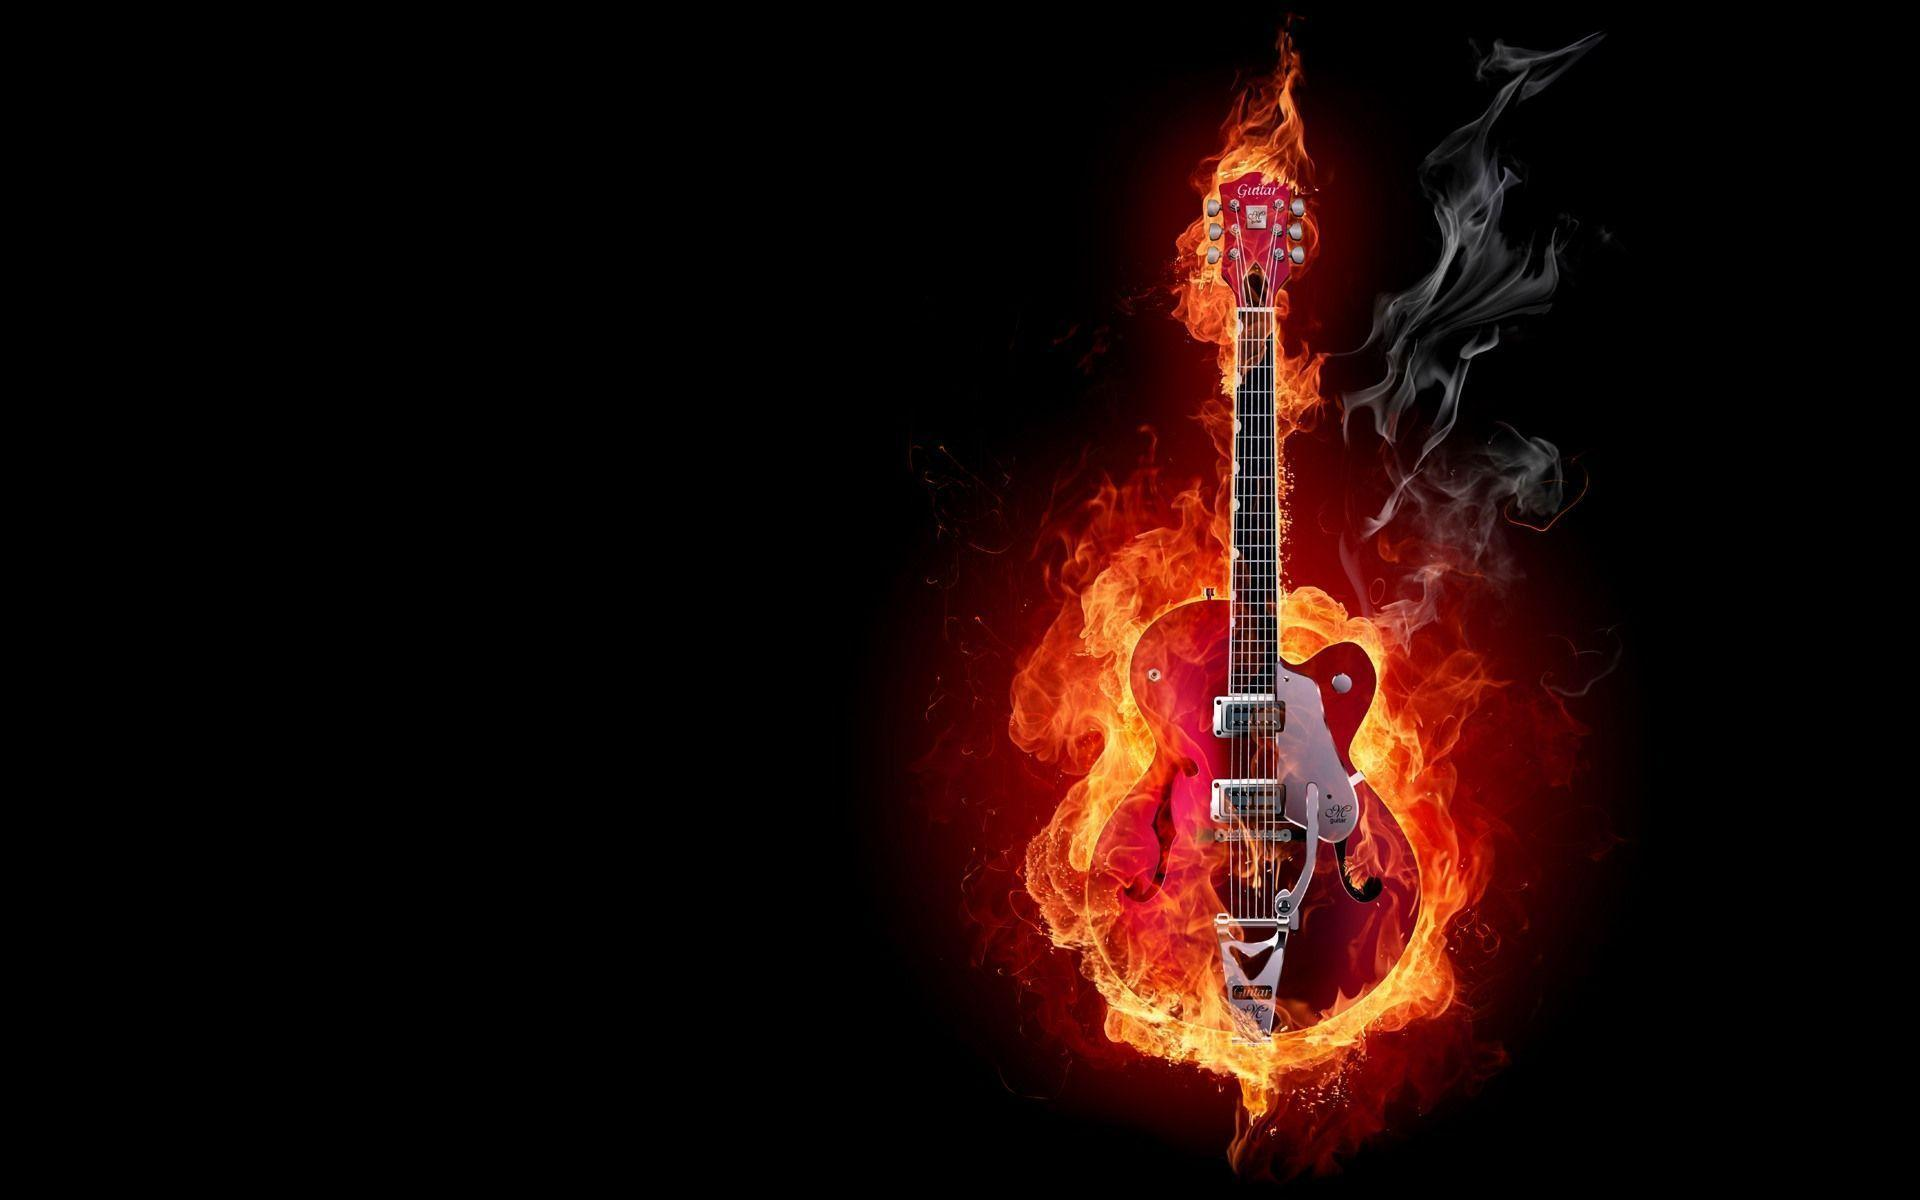 cool guitar backgrounds – 1920×1200 High Definition Wallpapers